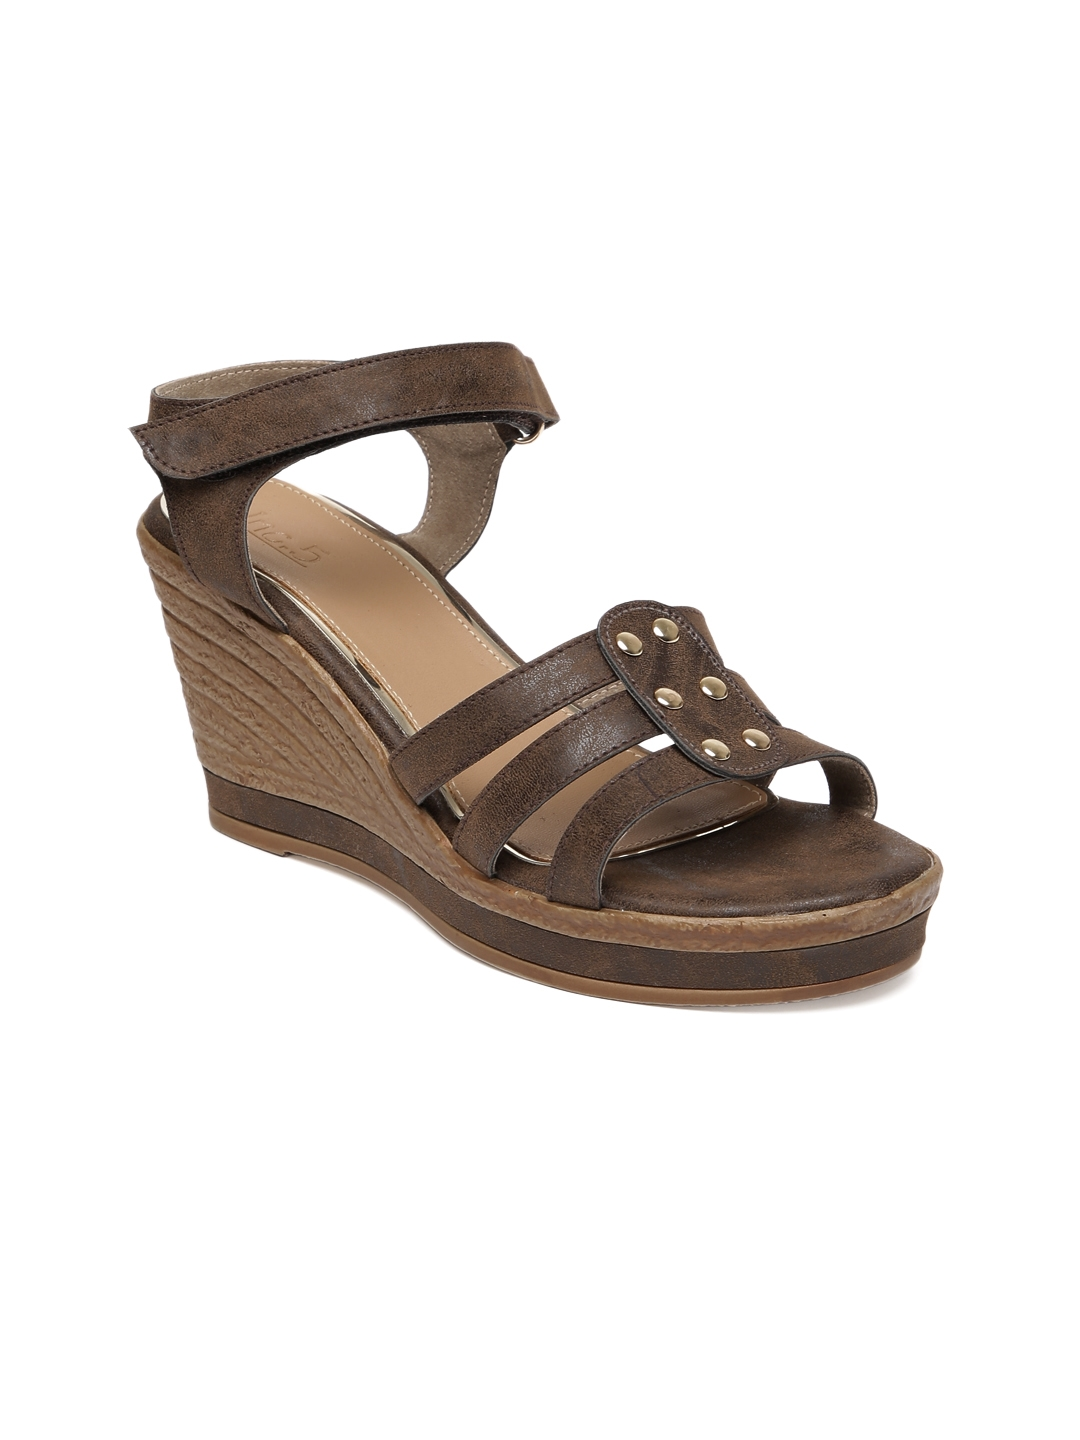 Inc 5 Women Brown Solid Wedge Sandals